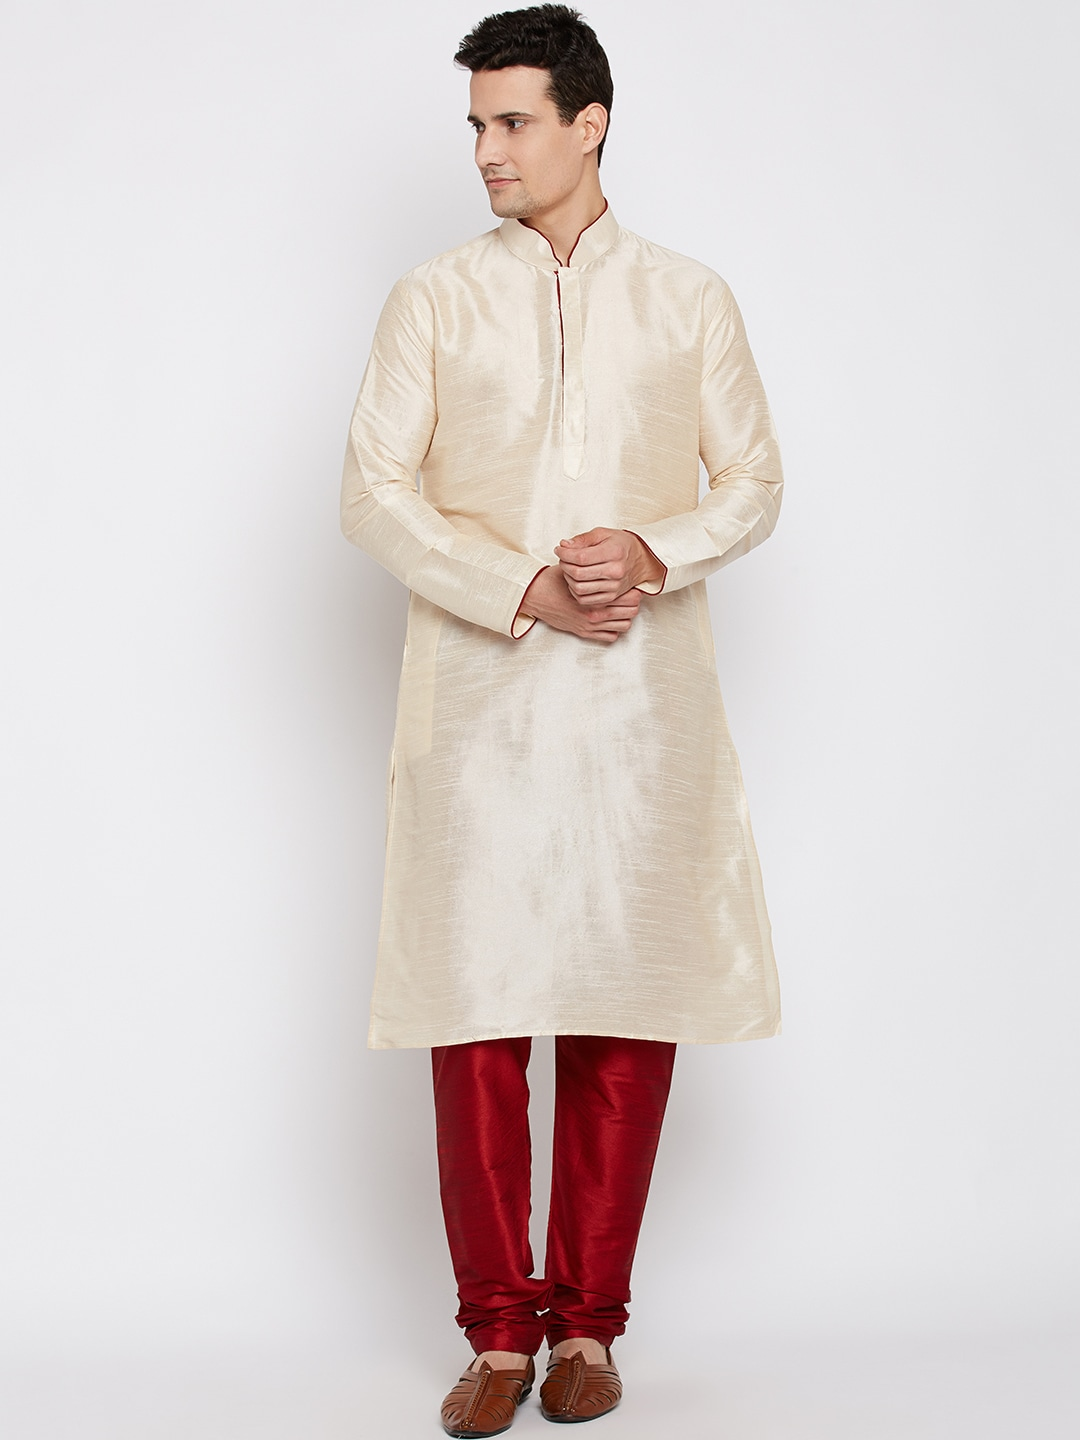 RG DESIGNERS Men Cream-Coloured & Maroon Solid Kurta with Pyjamas image